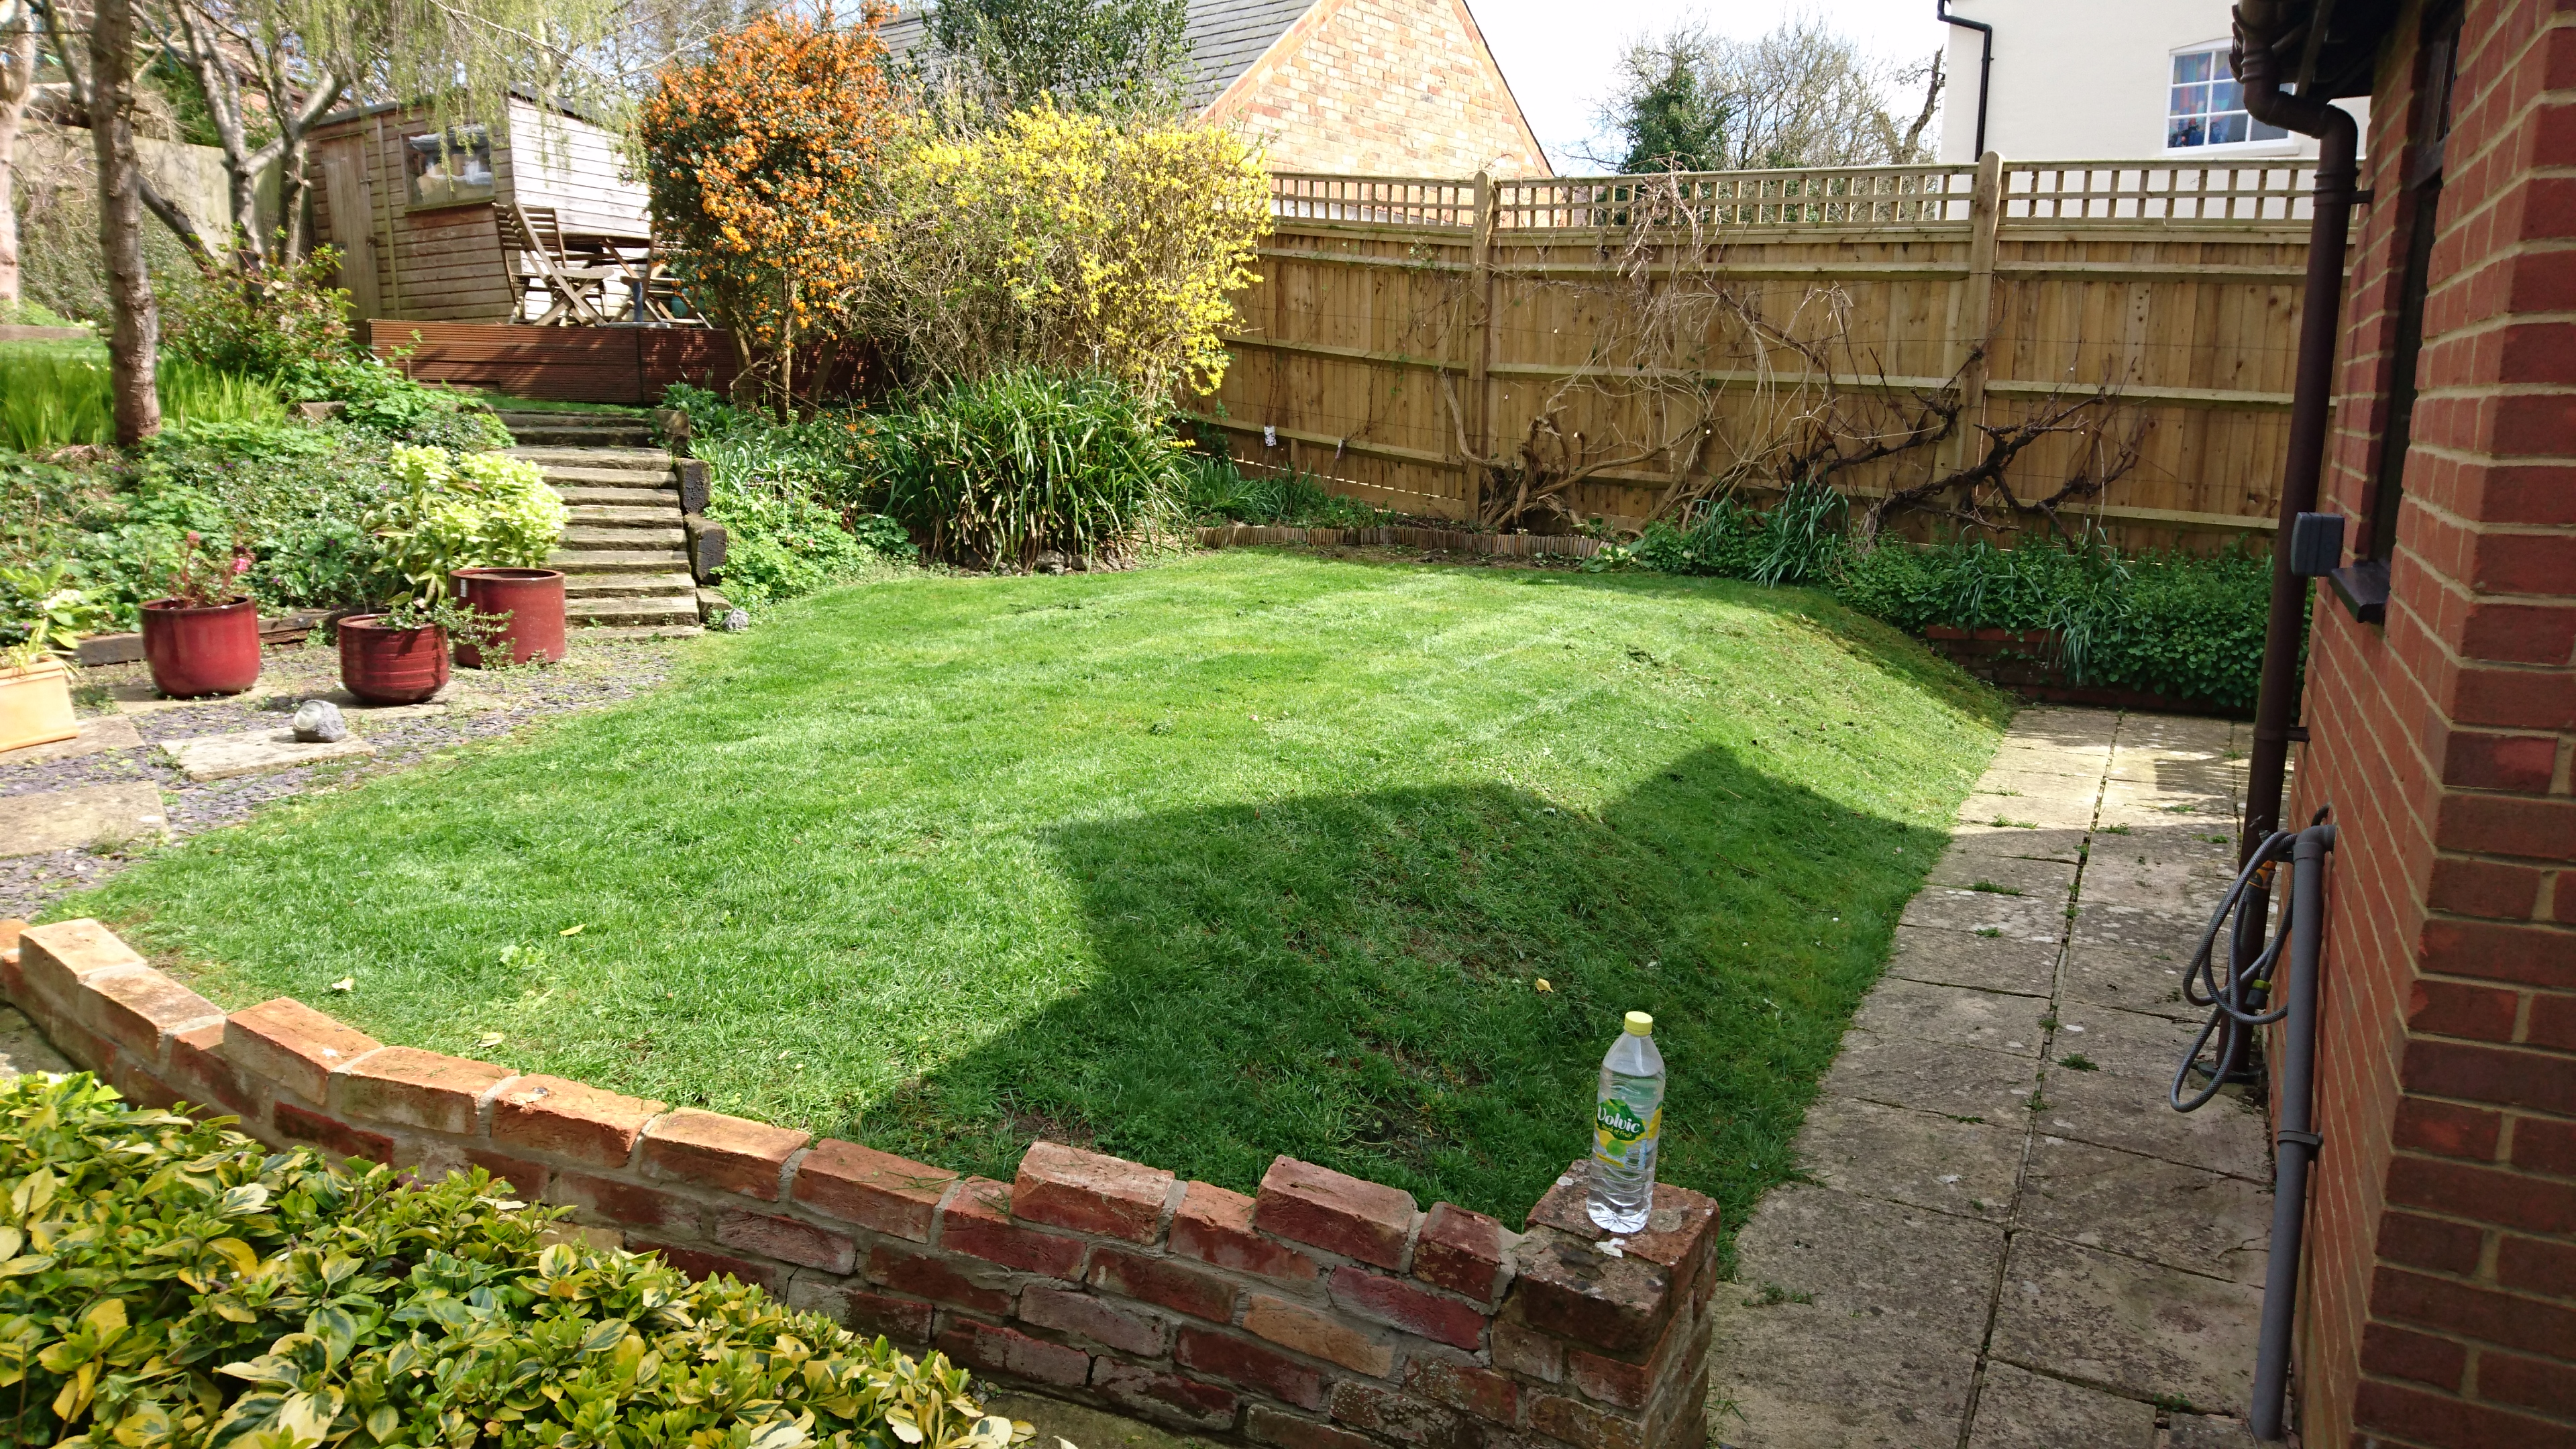 Lawn on a slope